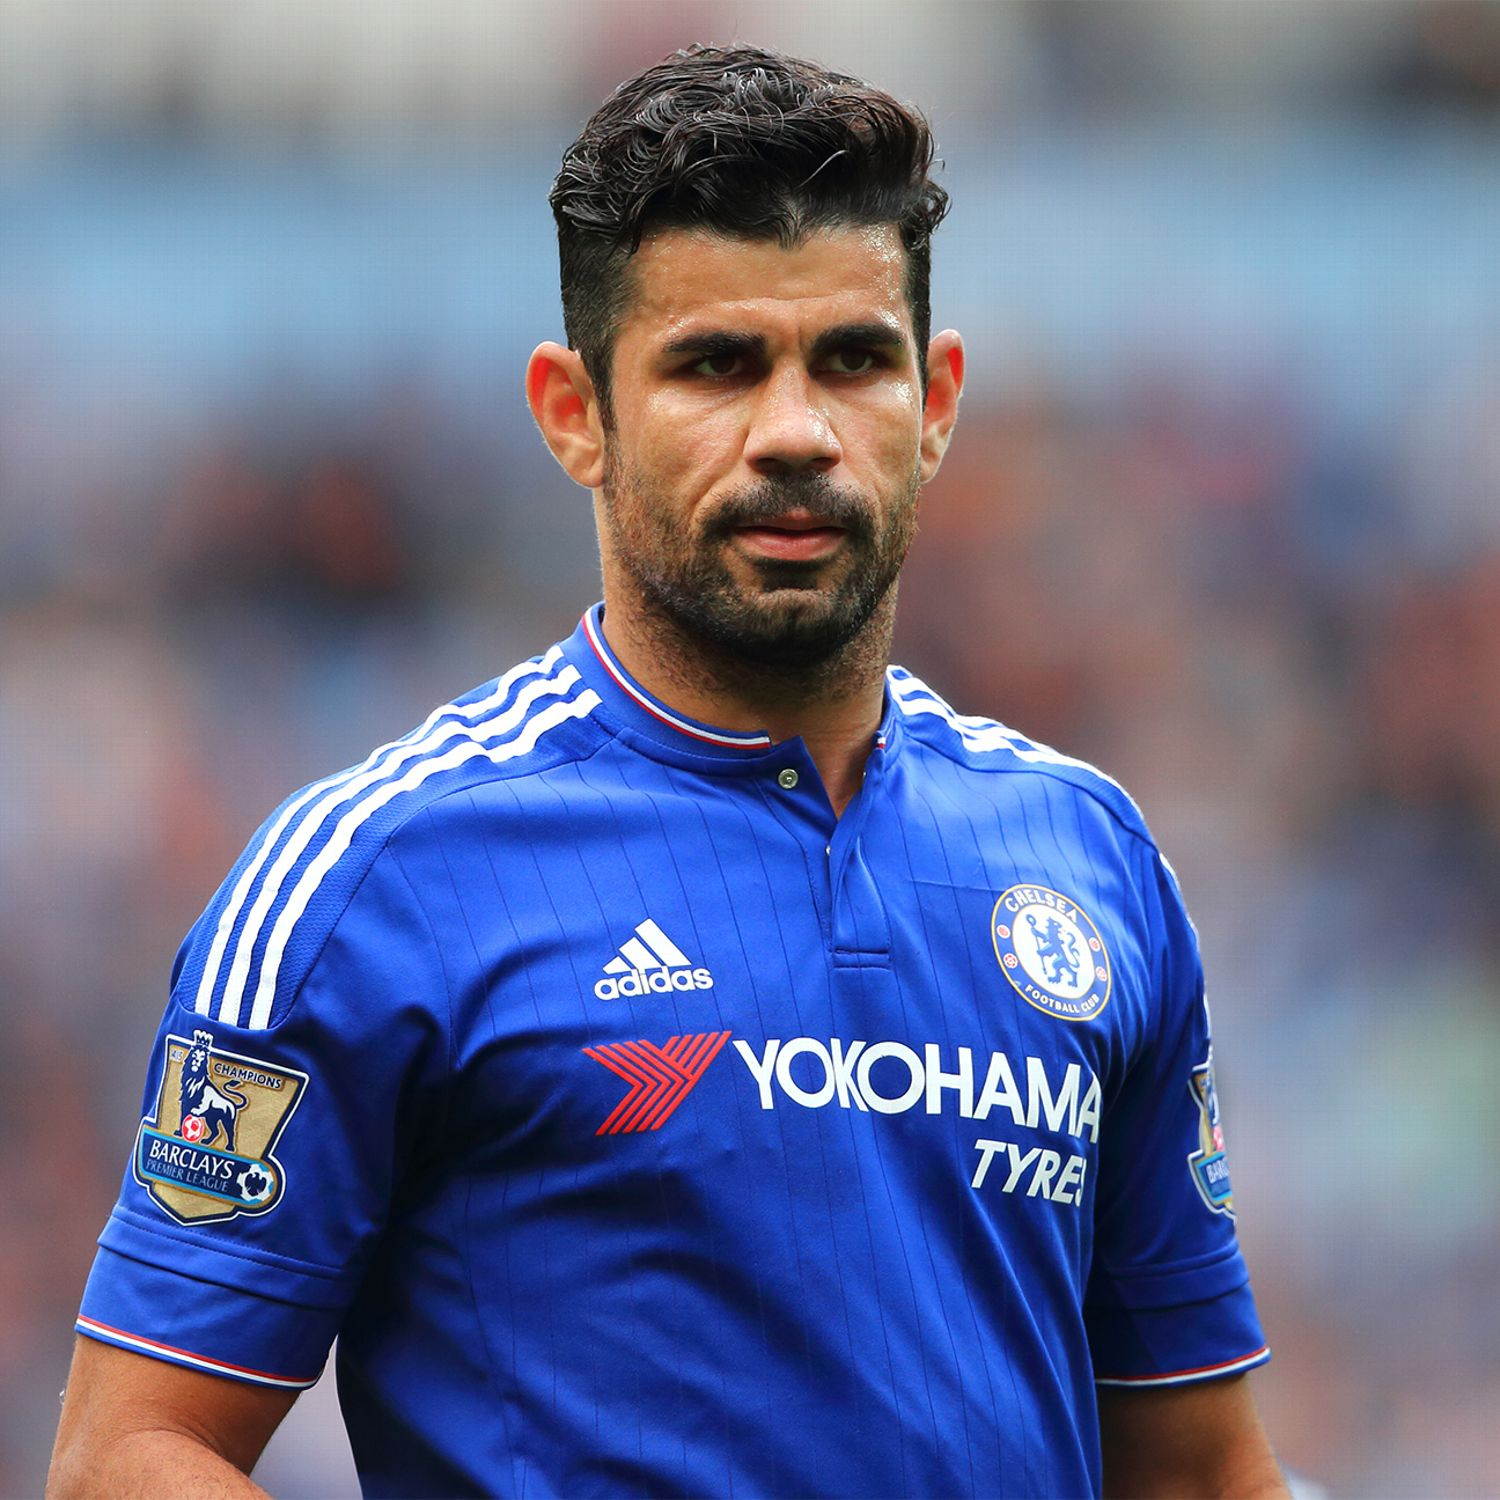 Diego Costa 'likes to cheat' - Chelsea defender Kurt Zouma ...